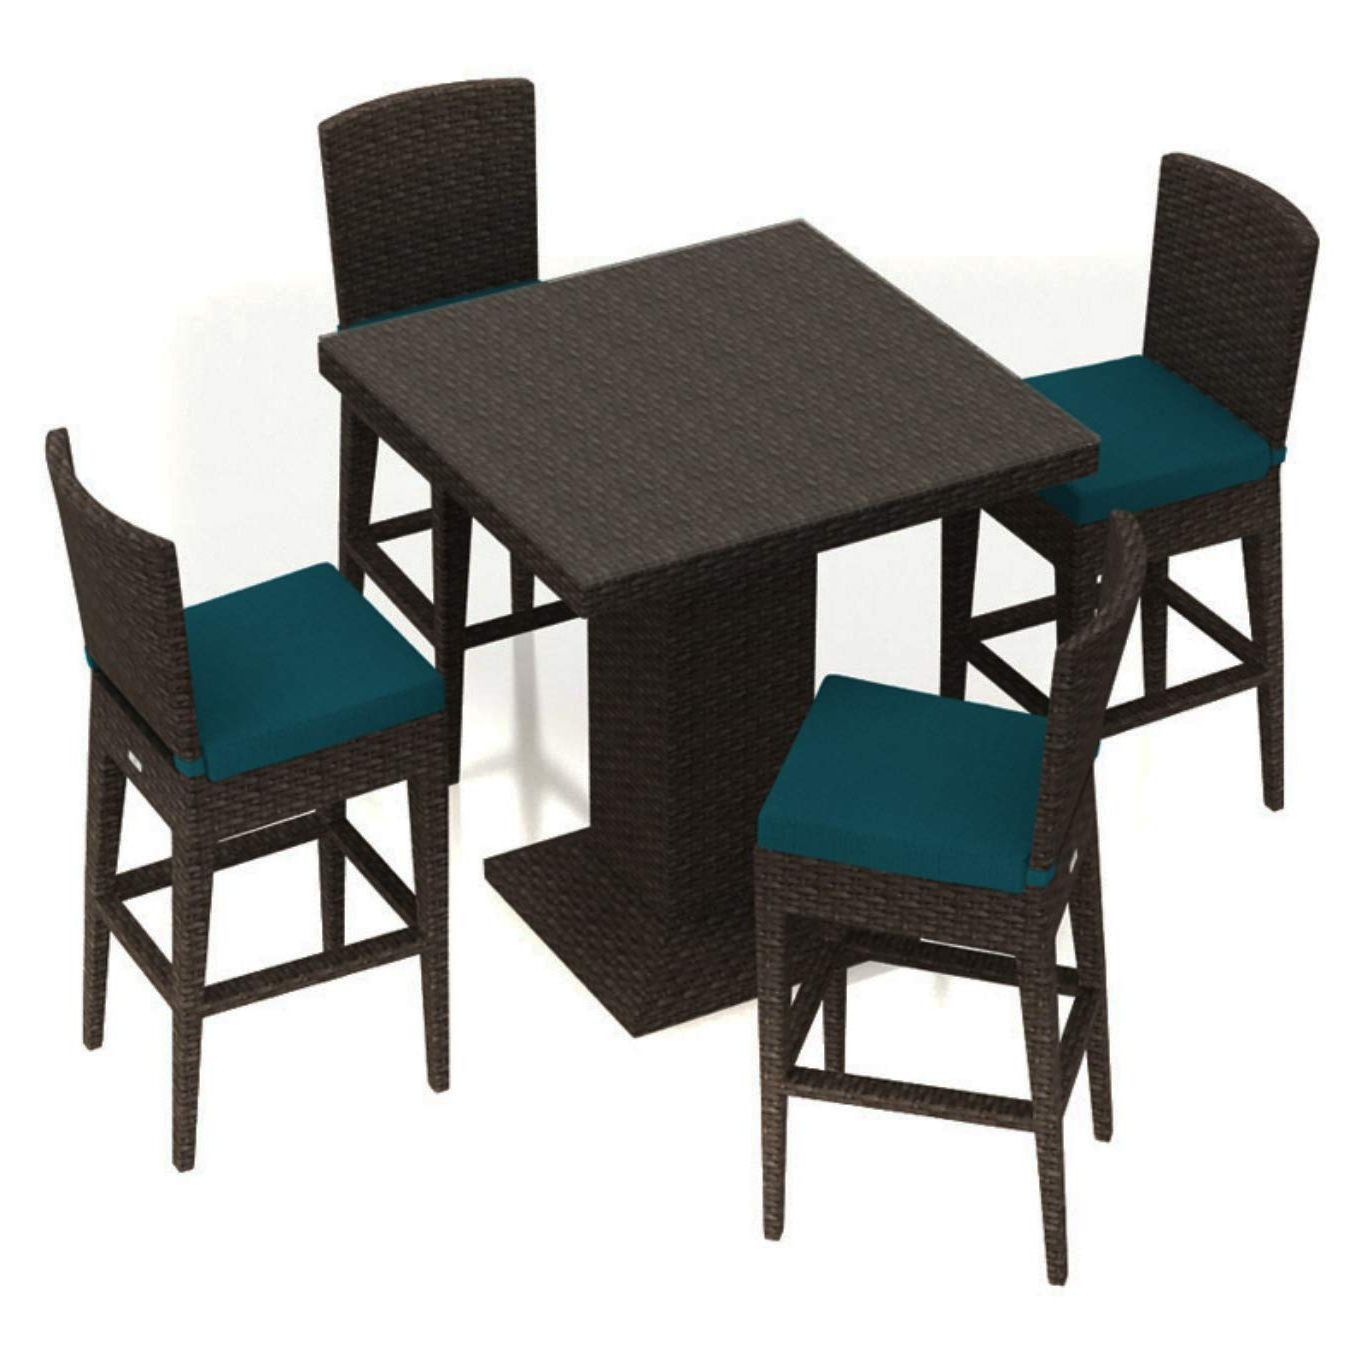 Bistro Transitional 4 Seating Square Dining Tables For Latest Amazon: Patio Dining Set. Outdoor, Bar Height Furniture (Gallery 23 of 30)